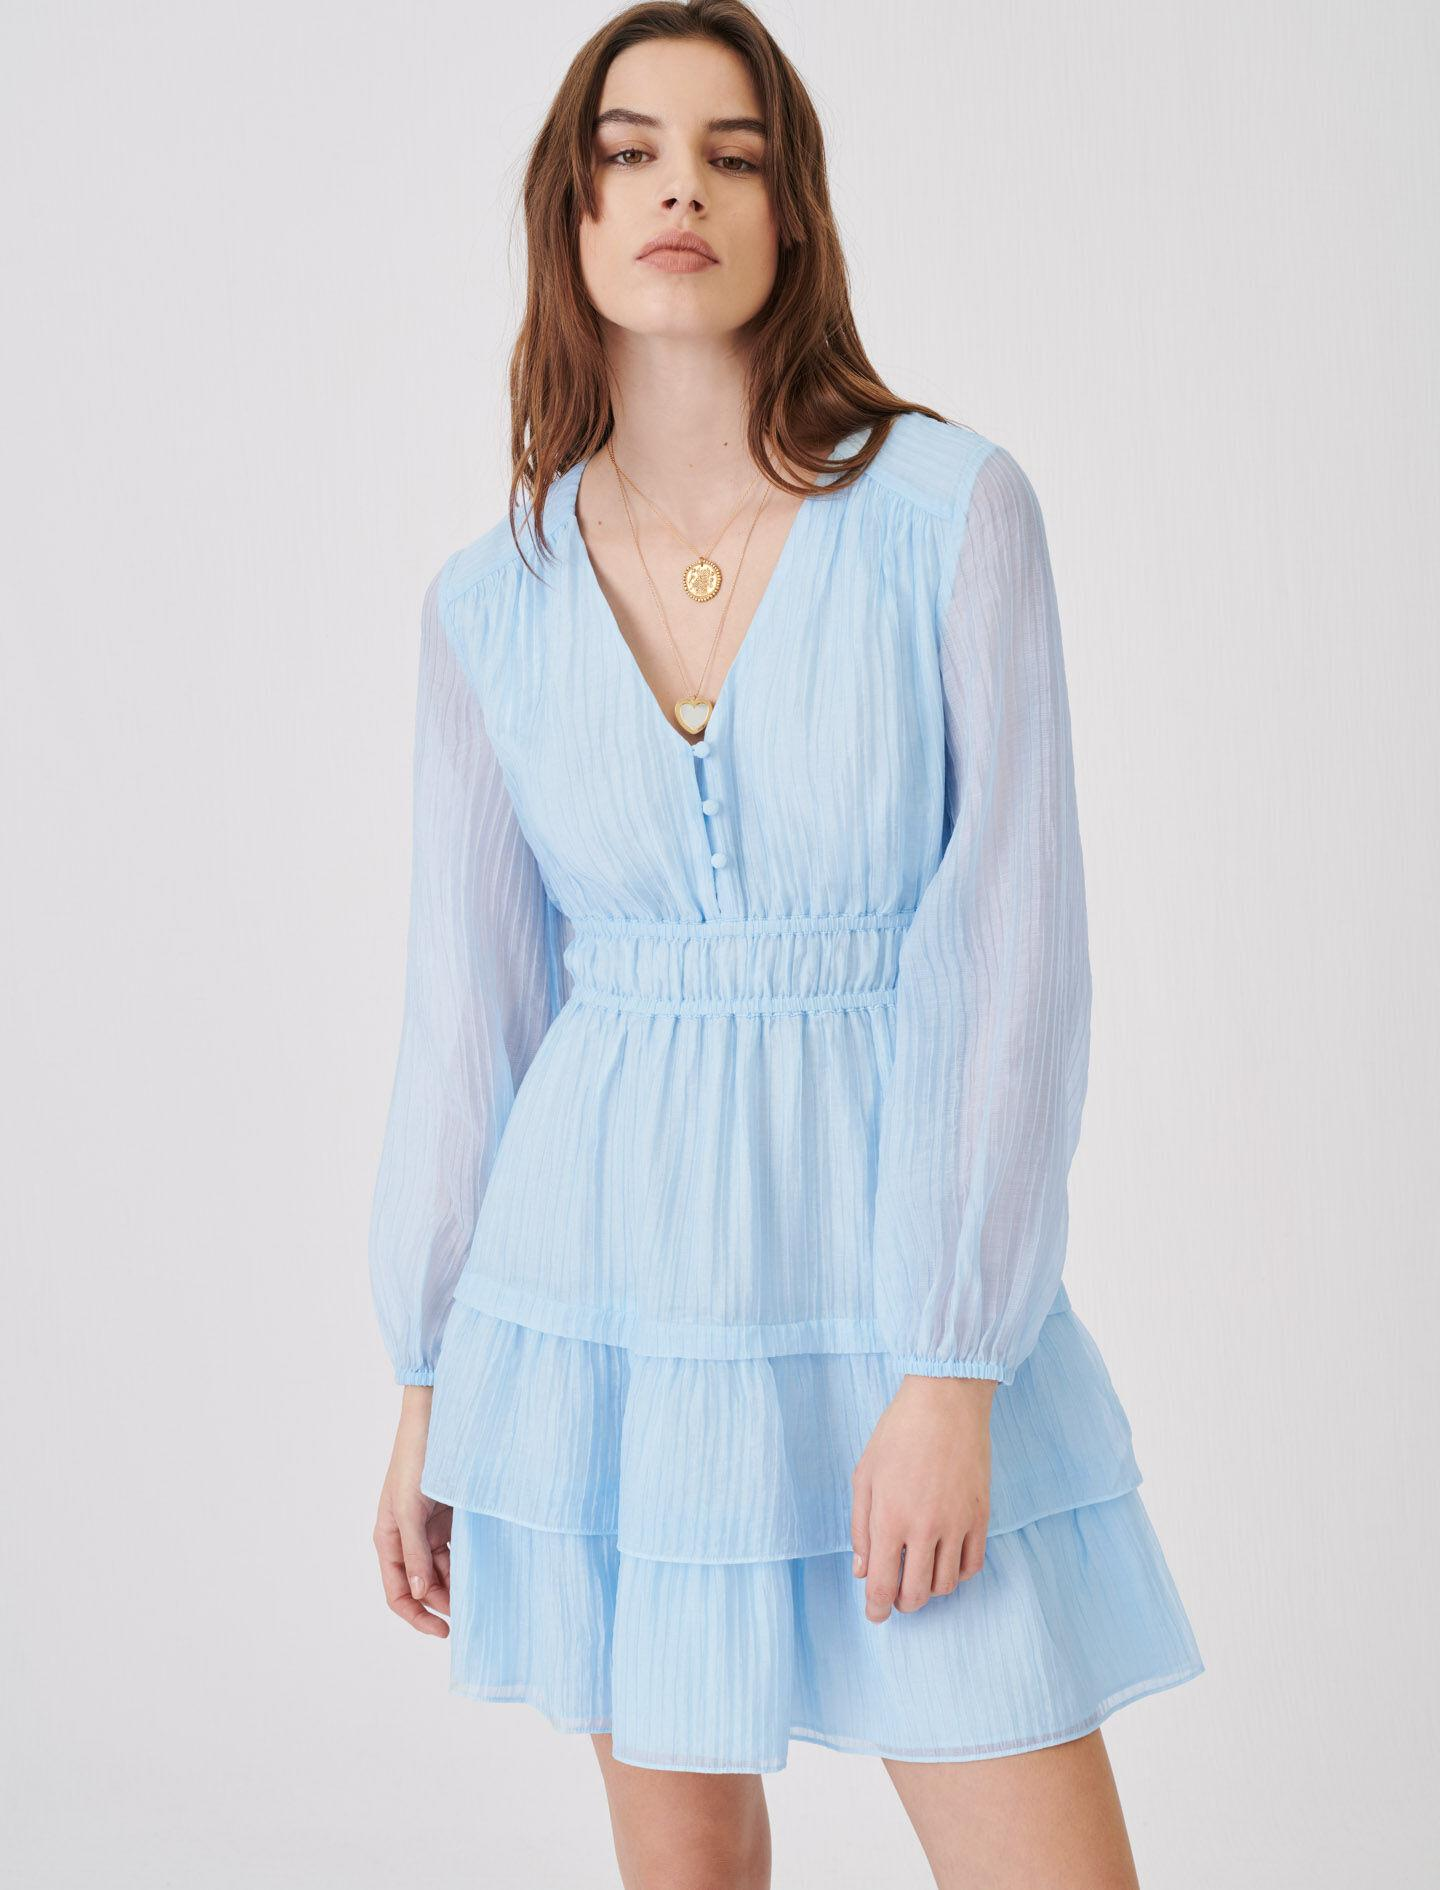 CRINKLE-EFFECT VOILE DRESS WITH RUFFLES